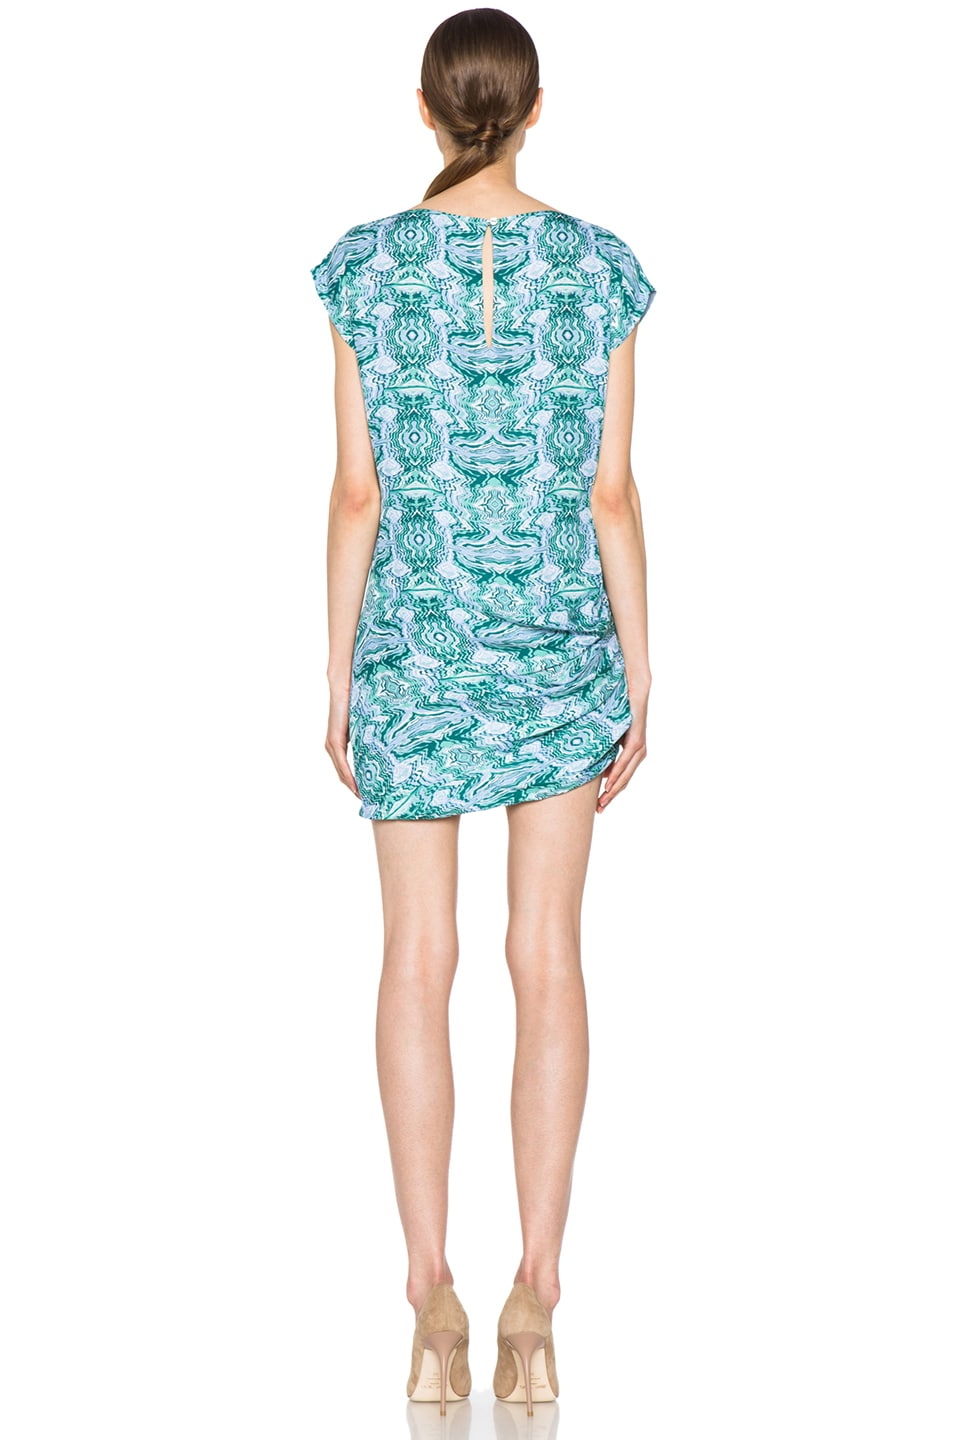 Image 4 of Kelly Wearstler Mirror Print Cocoon Dress in Blue Multi